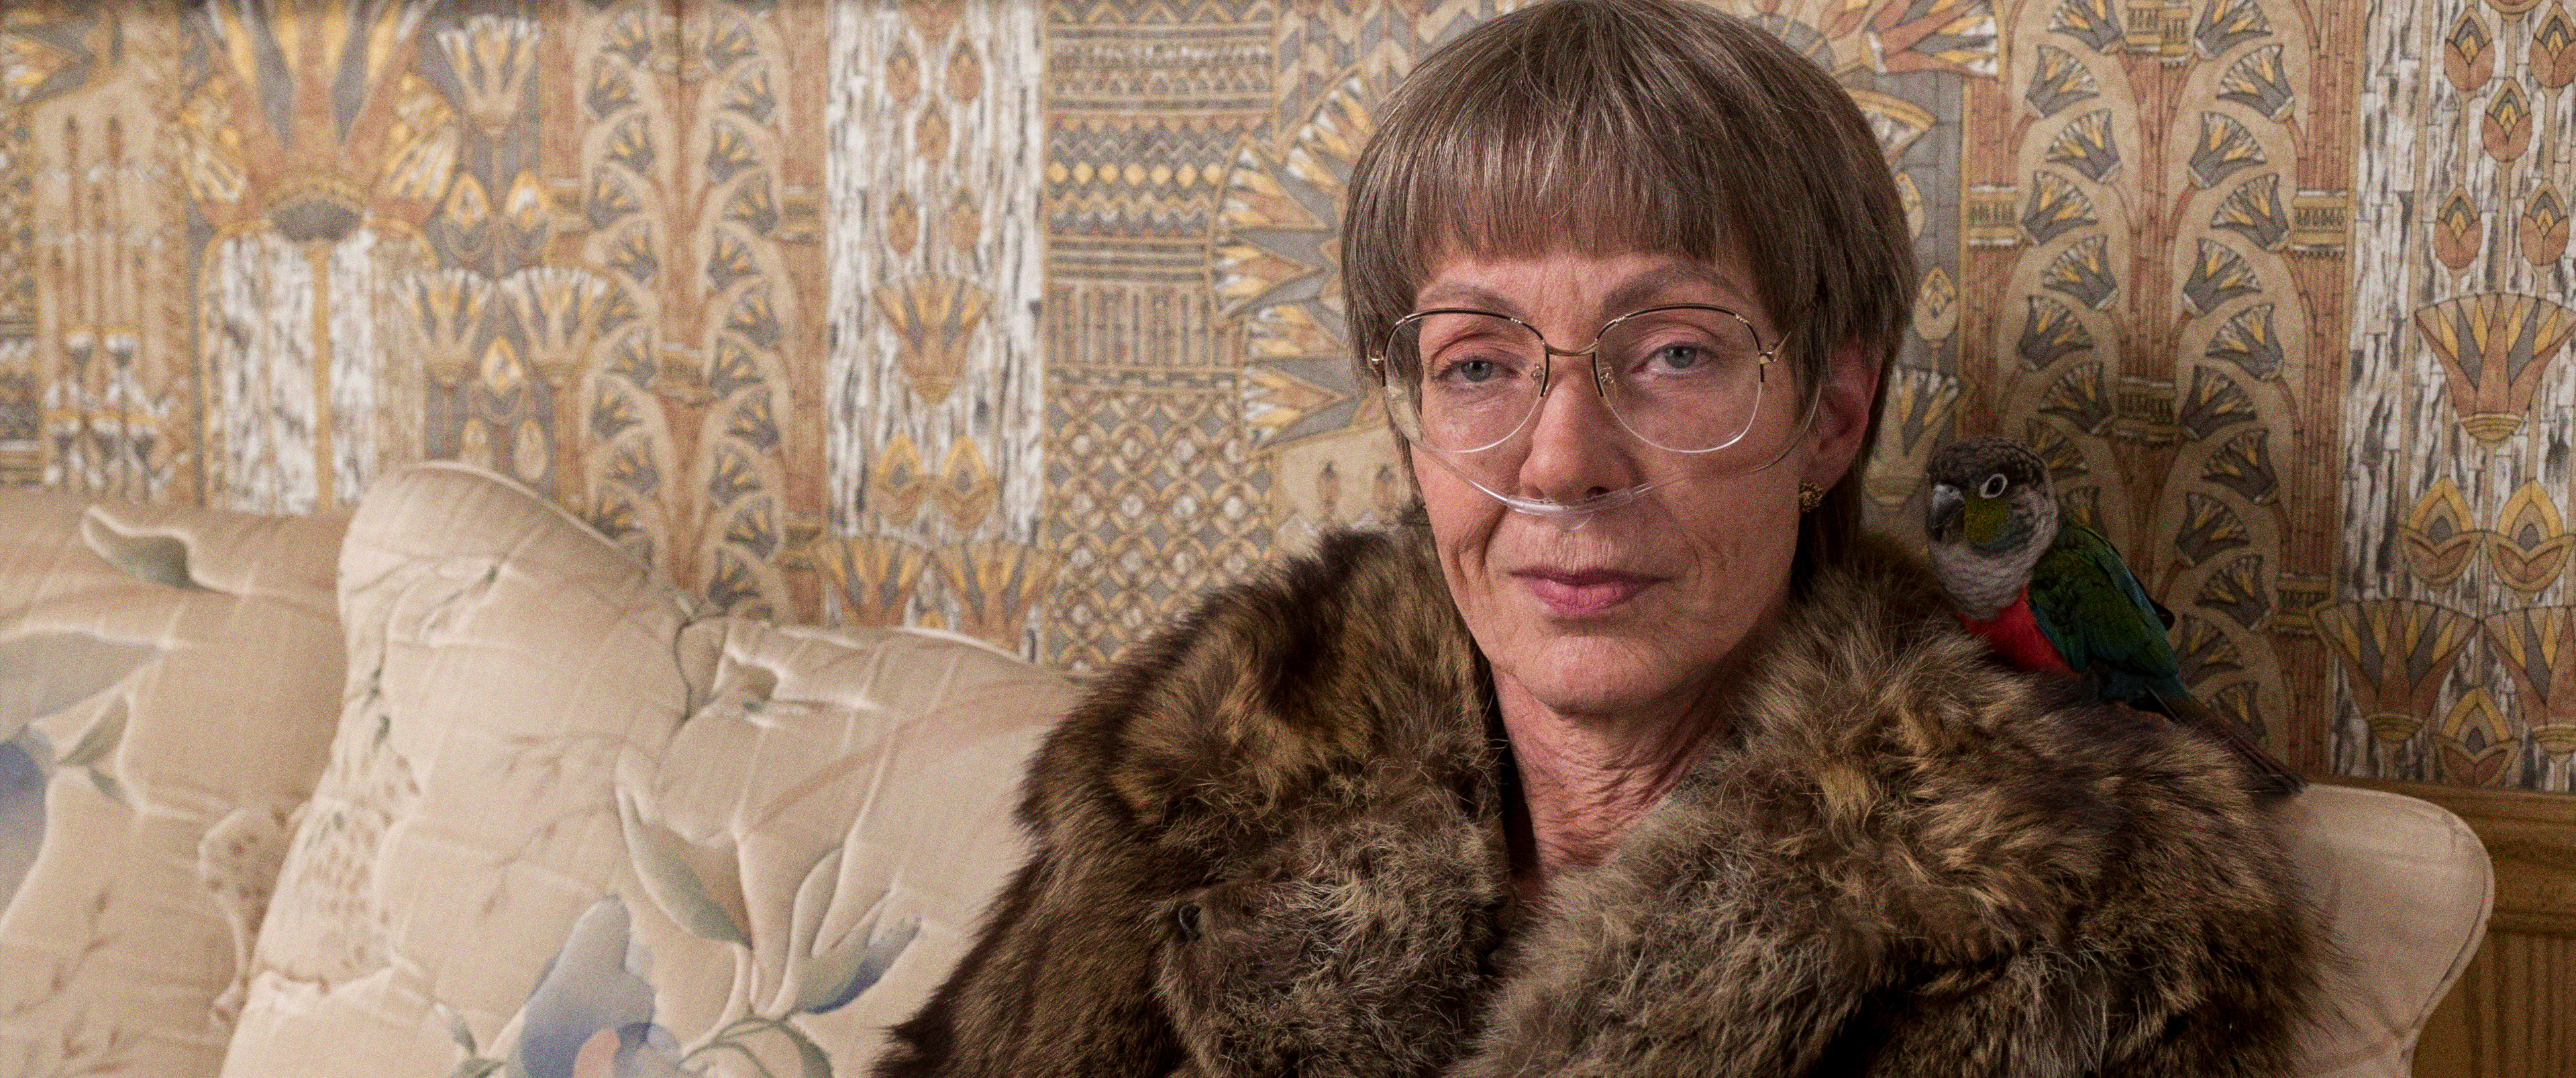 3-LaVona Golden (Allison Janney) and her pet bird in I, TONYA, courtesy of NEON